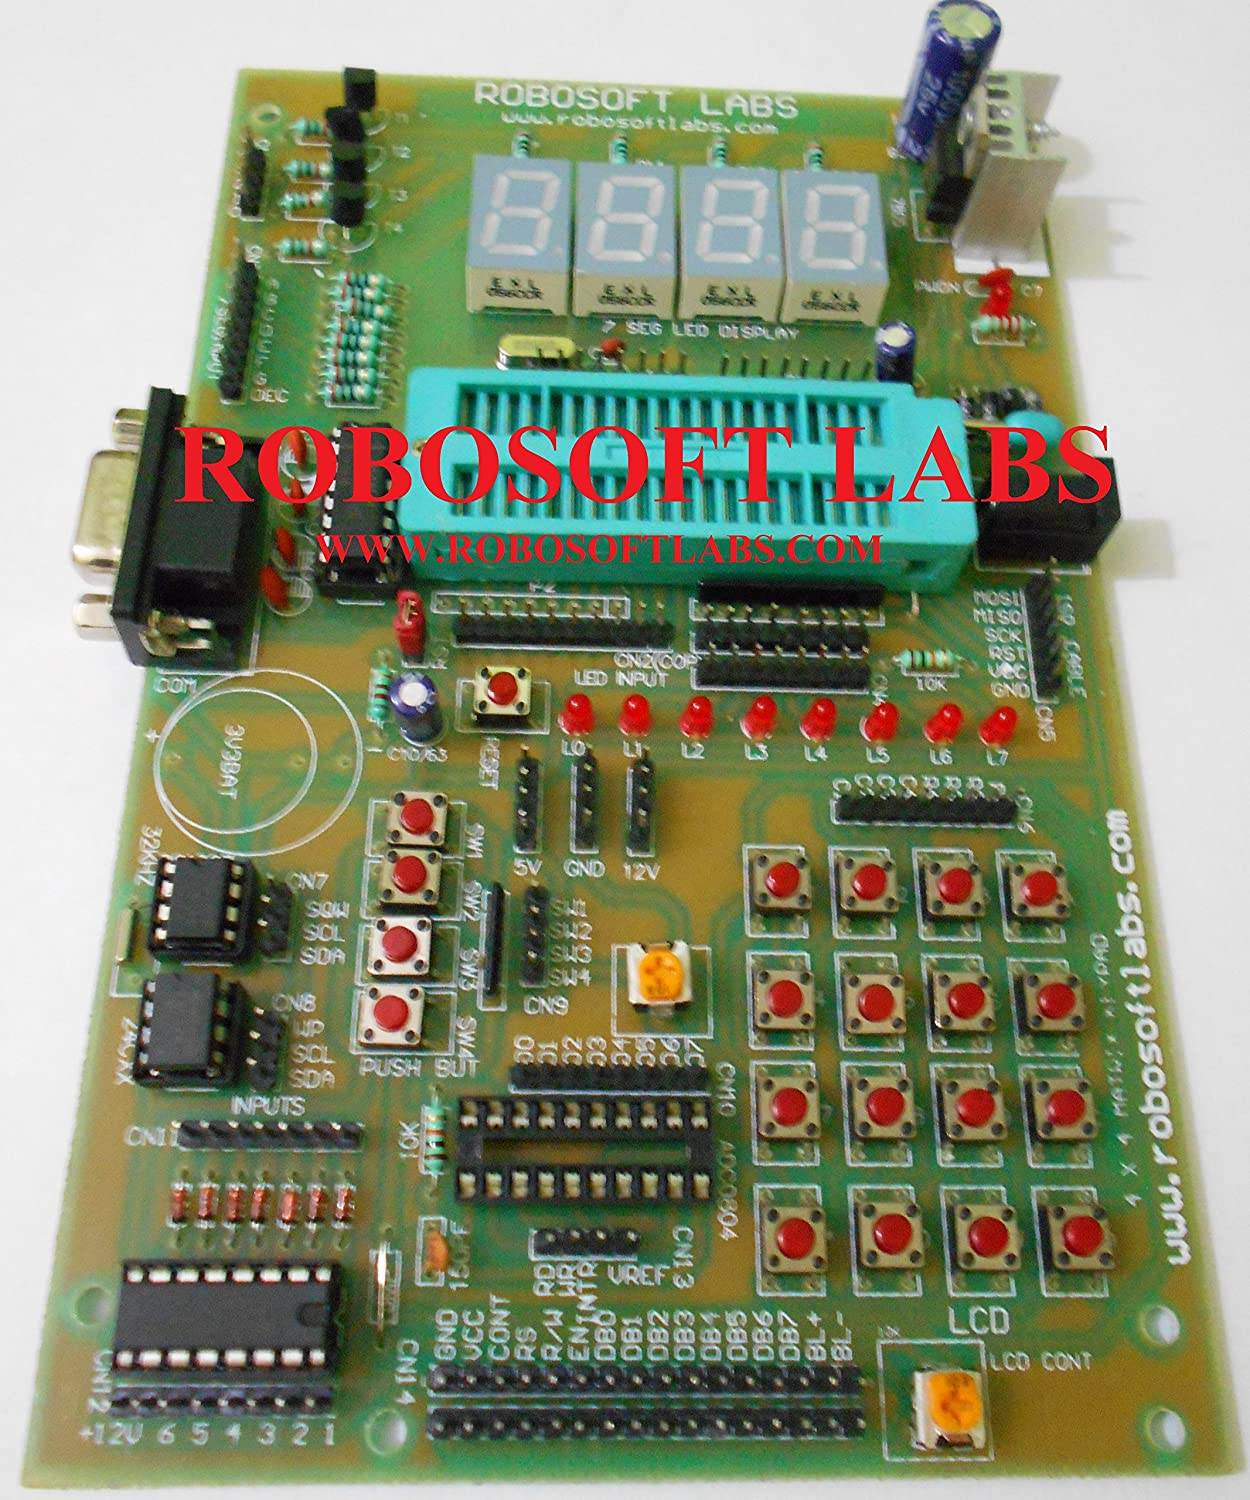 Buy Robosoft Labs 8051 8052 40 Pin Development Board With Max232 Interfacing Relay Pic Microcontroller Using Uln2003 Rtc At24c32 Ics Online At Low Prices In India